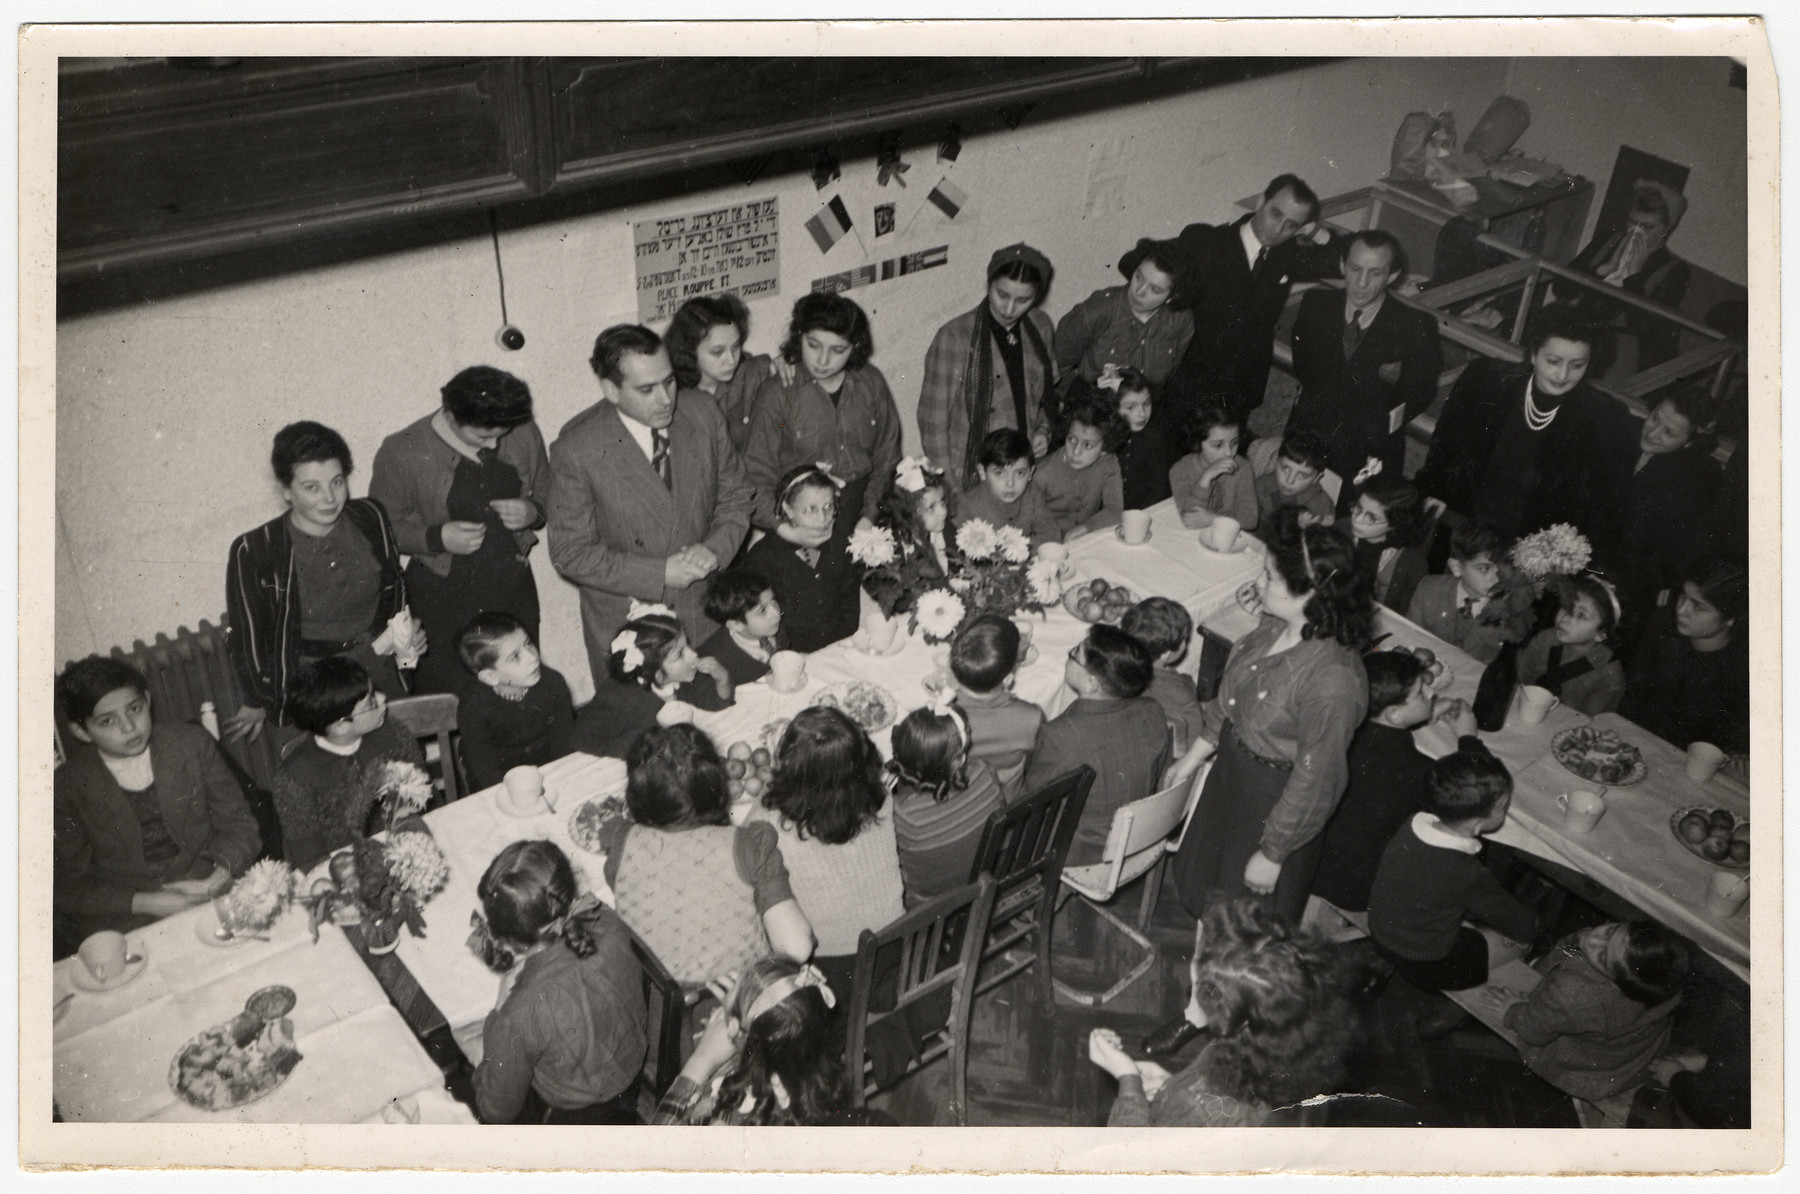 Children in a postwar children's home gather around long tables set with fruit and decorated with flowers.  Hebrew signs hang on the walls.  Among those pictured is Fela Perleman (standing second from the left).